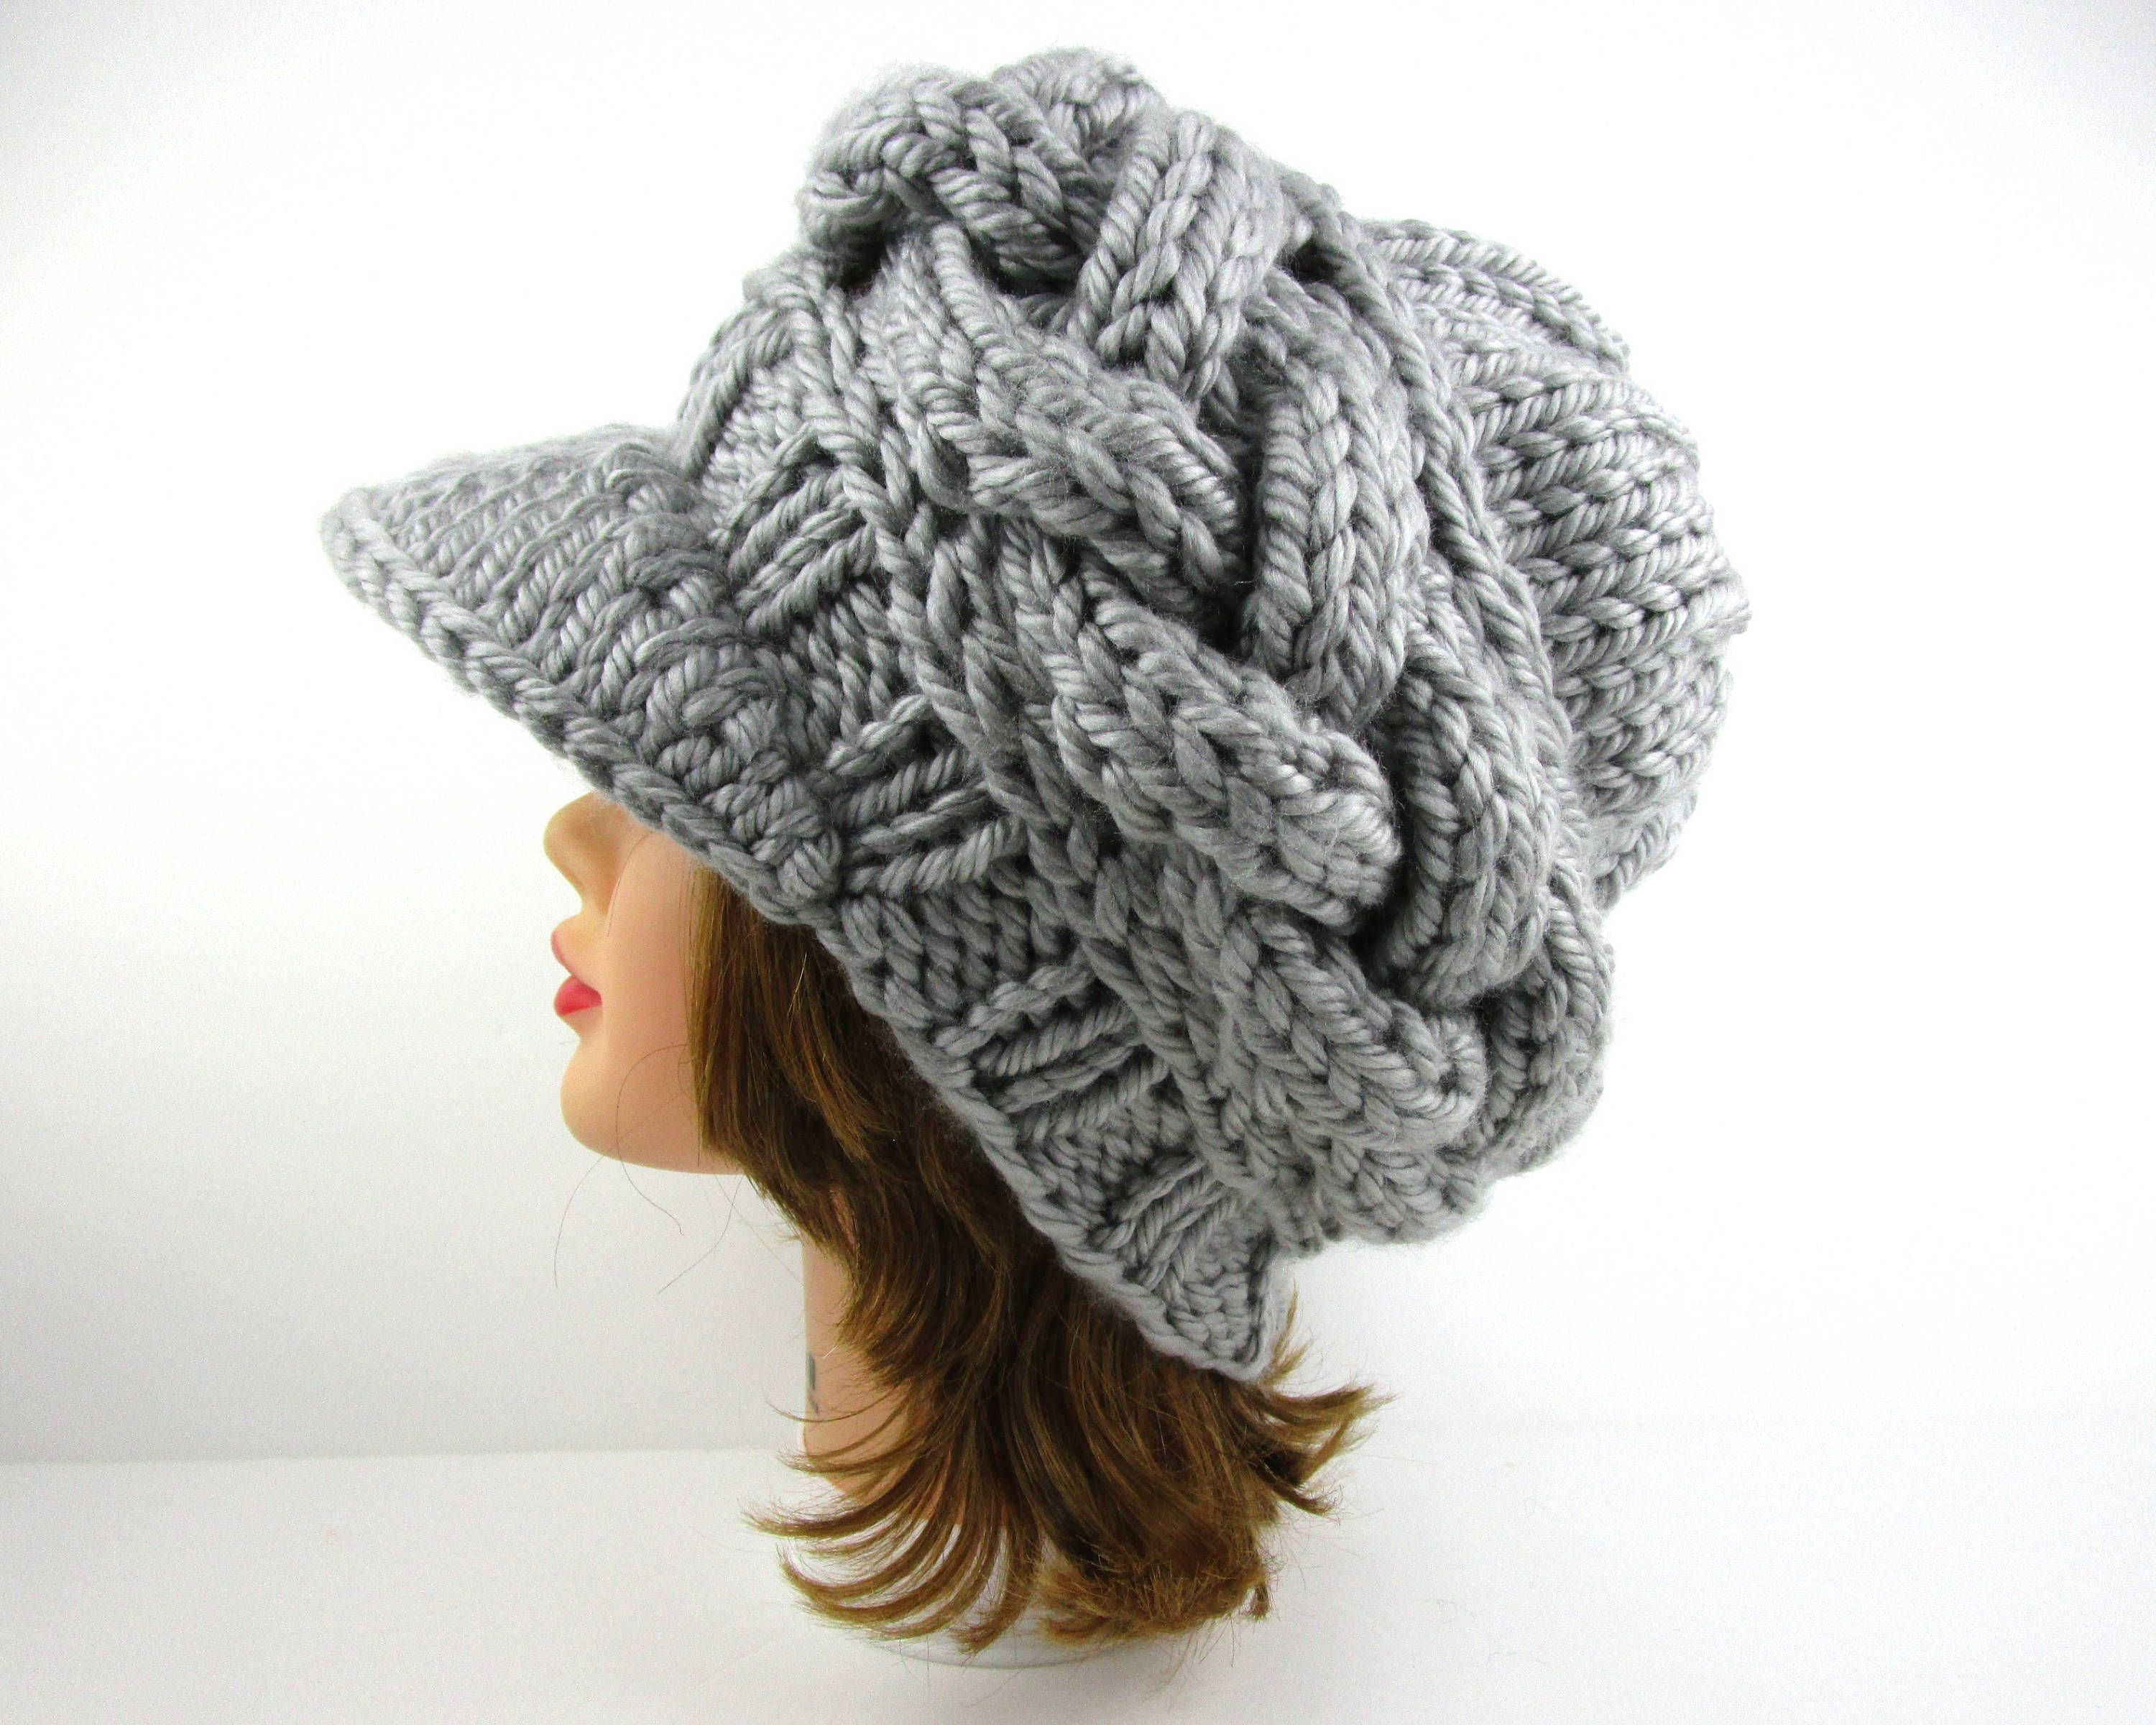 cb9defc4a43 Gray Newsboy Cap - Women s Hat With Visor - Brimmed Beanie - Cable Knit Cap  - Chunky Visor Hat - Knit Accessories by BettyMarieJones on Etsy